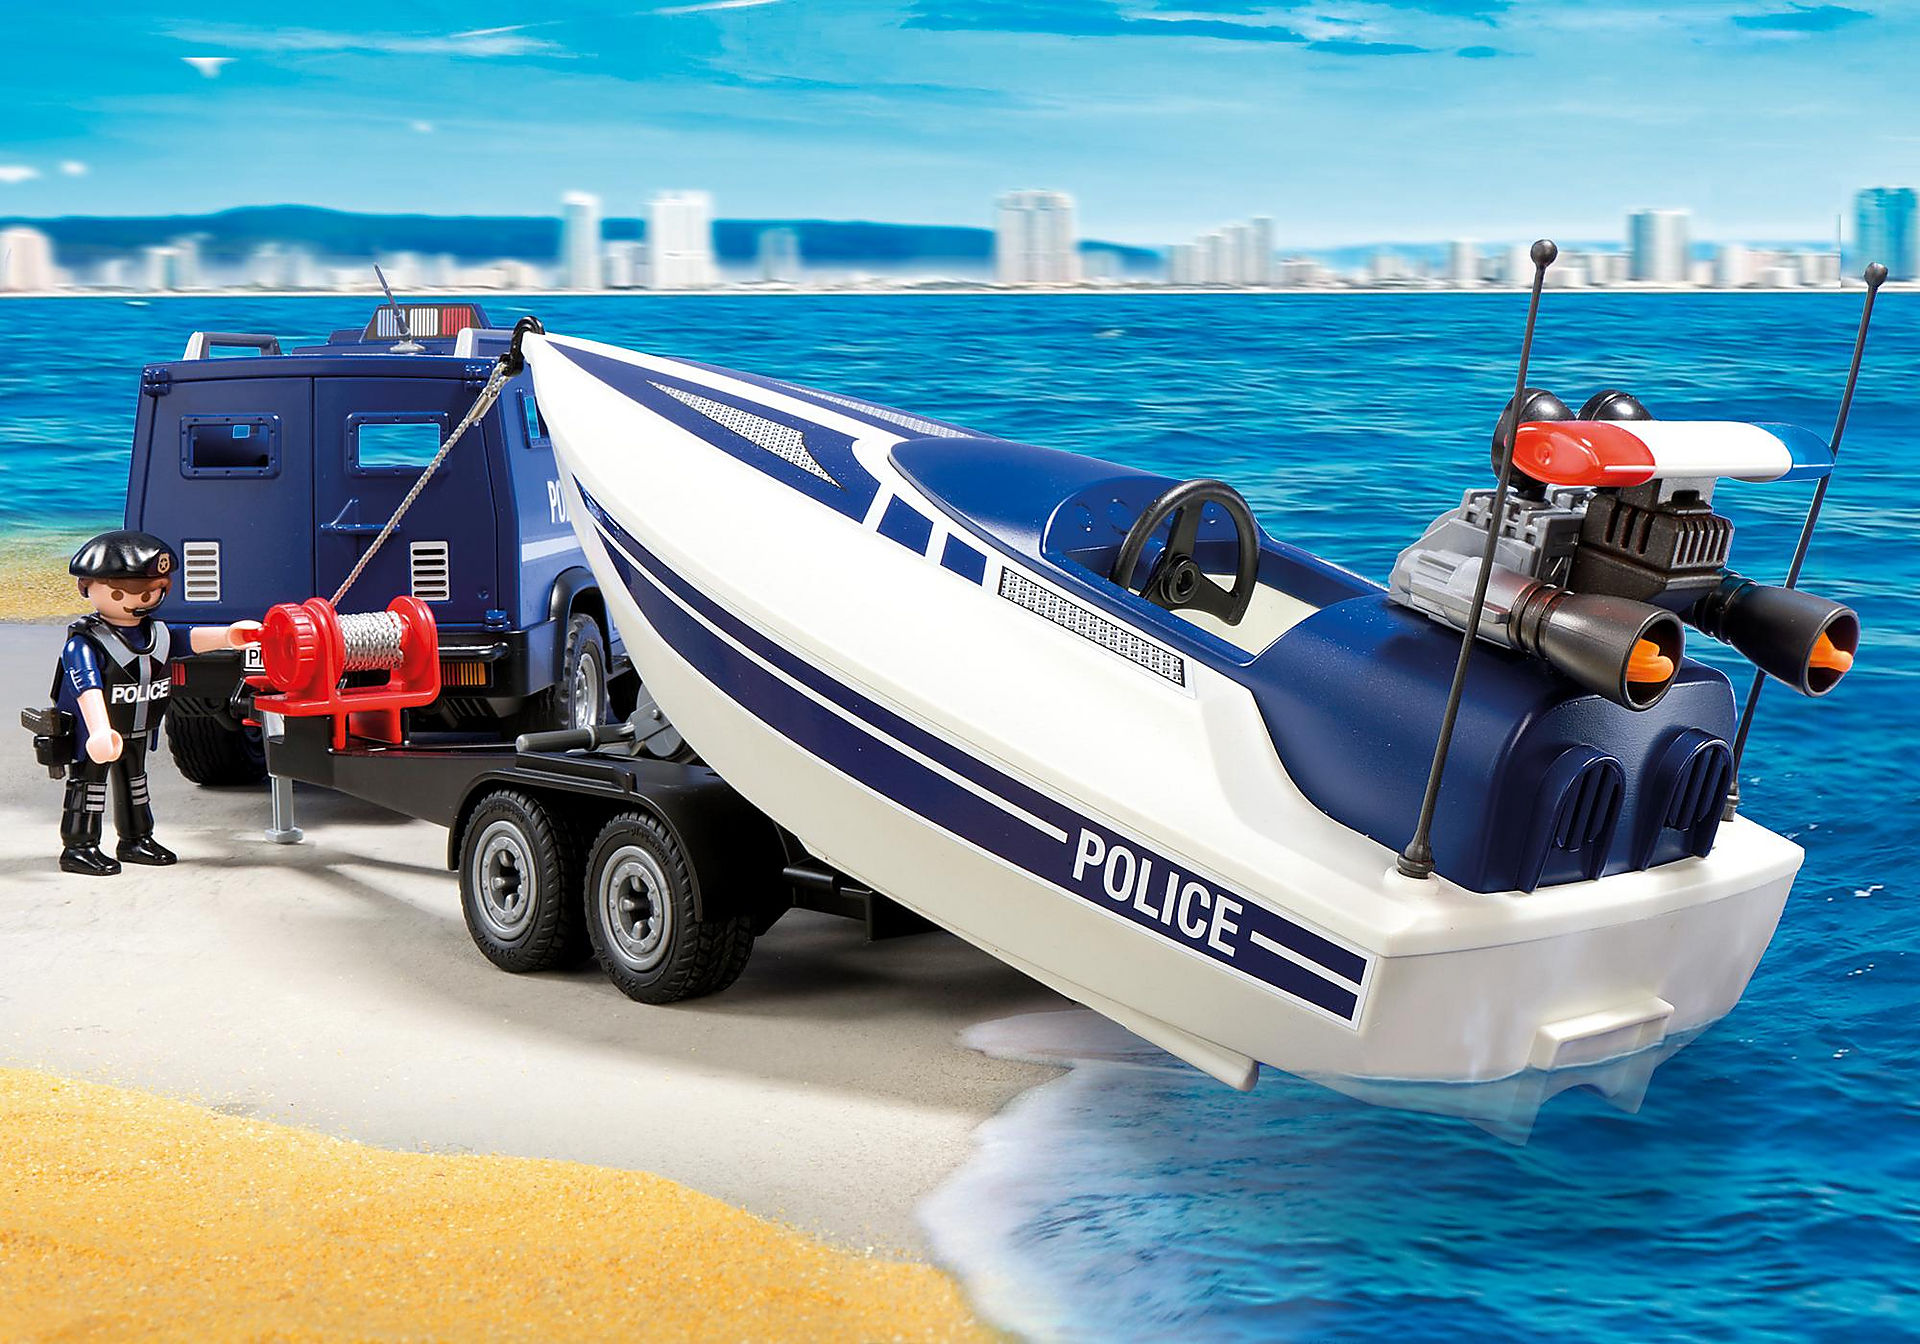 http://media.playmobil.com/i/playmobil/5187_product_extra1/Police Truck with Speedboat